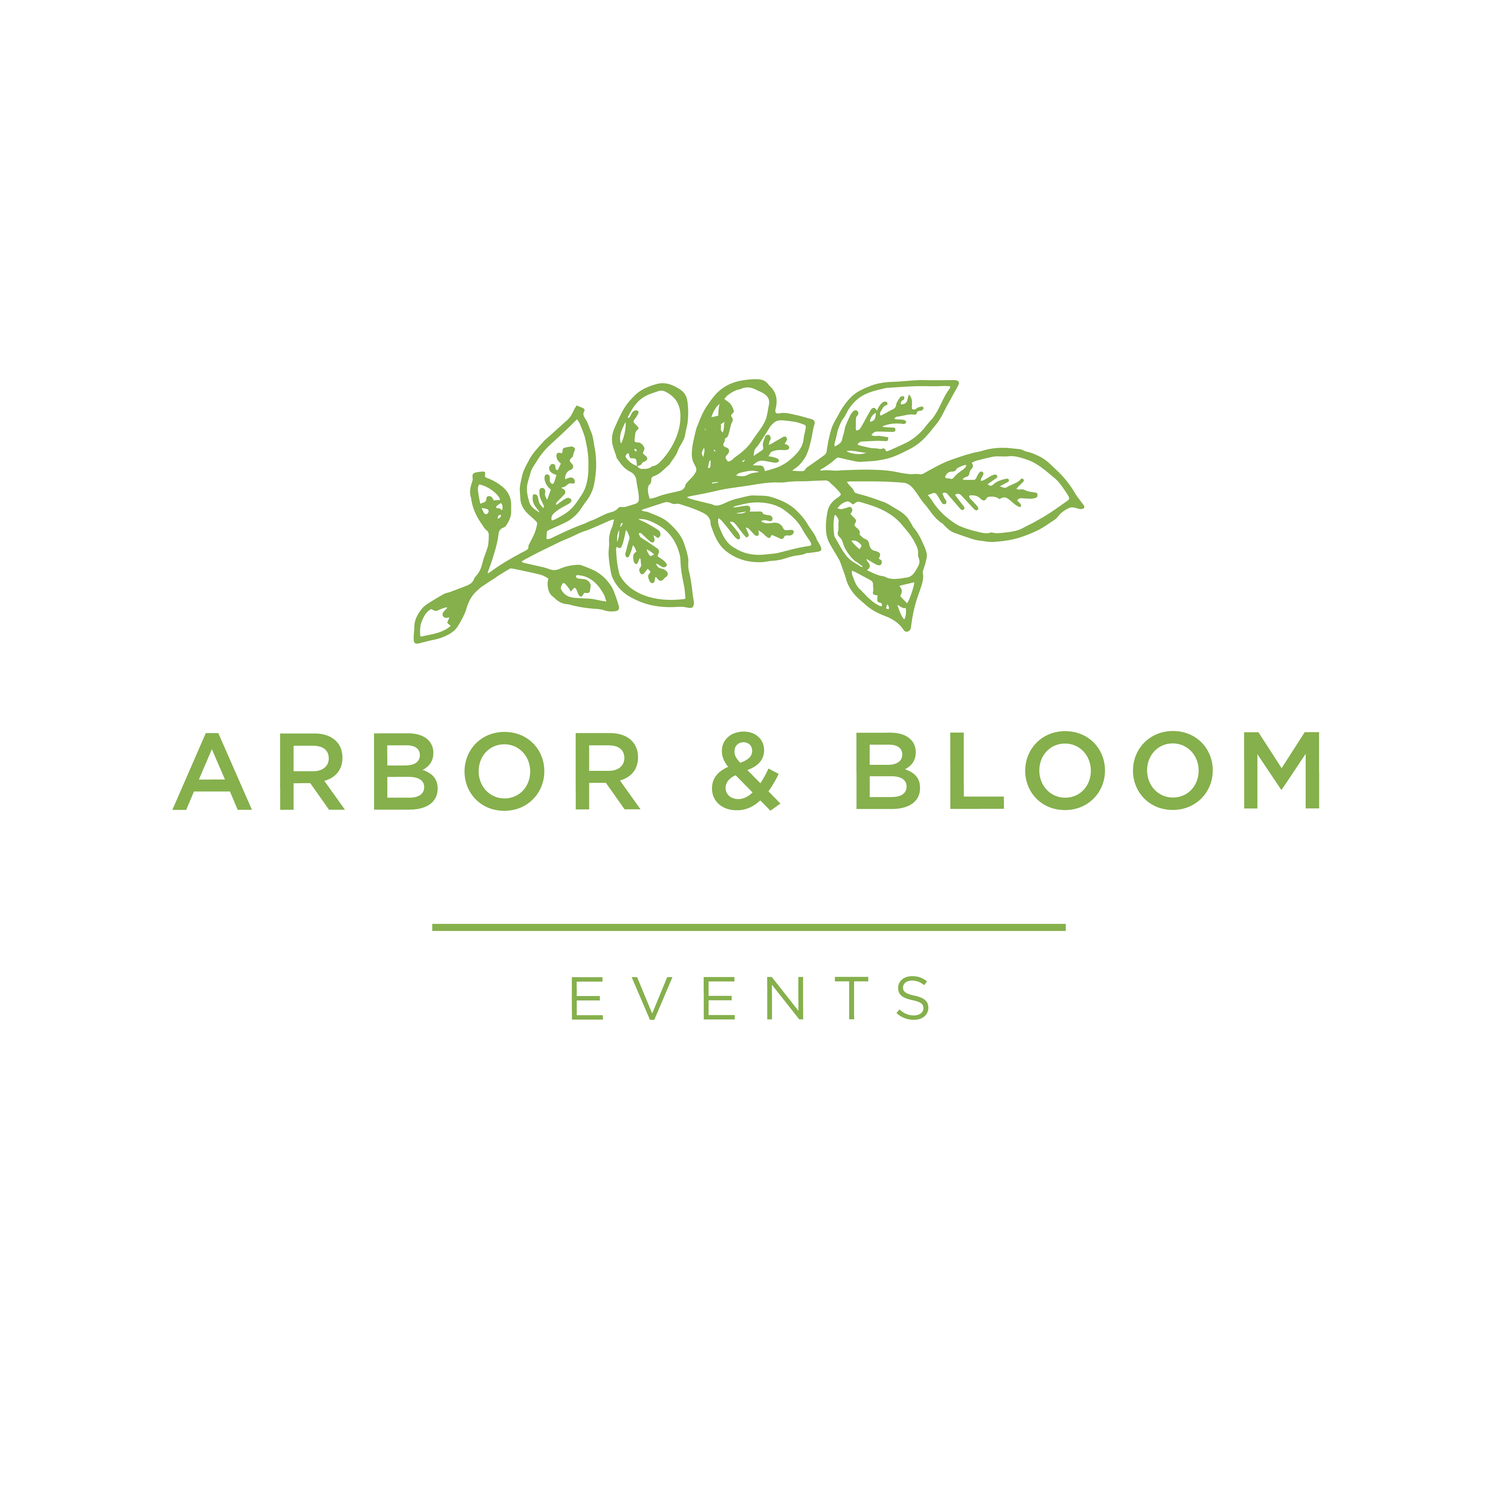 Arbor & Bloom Events